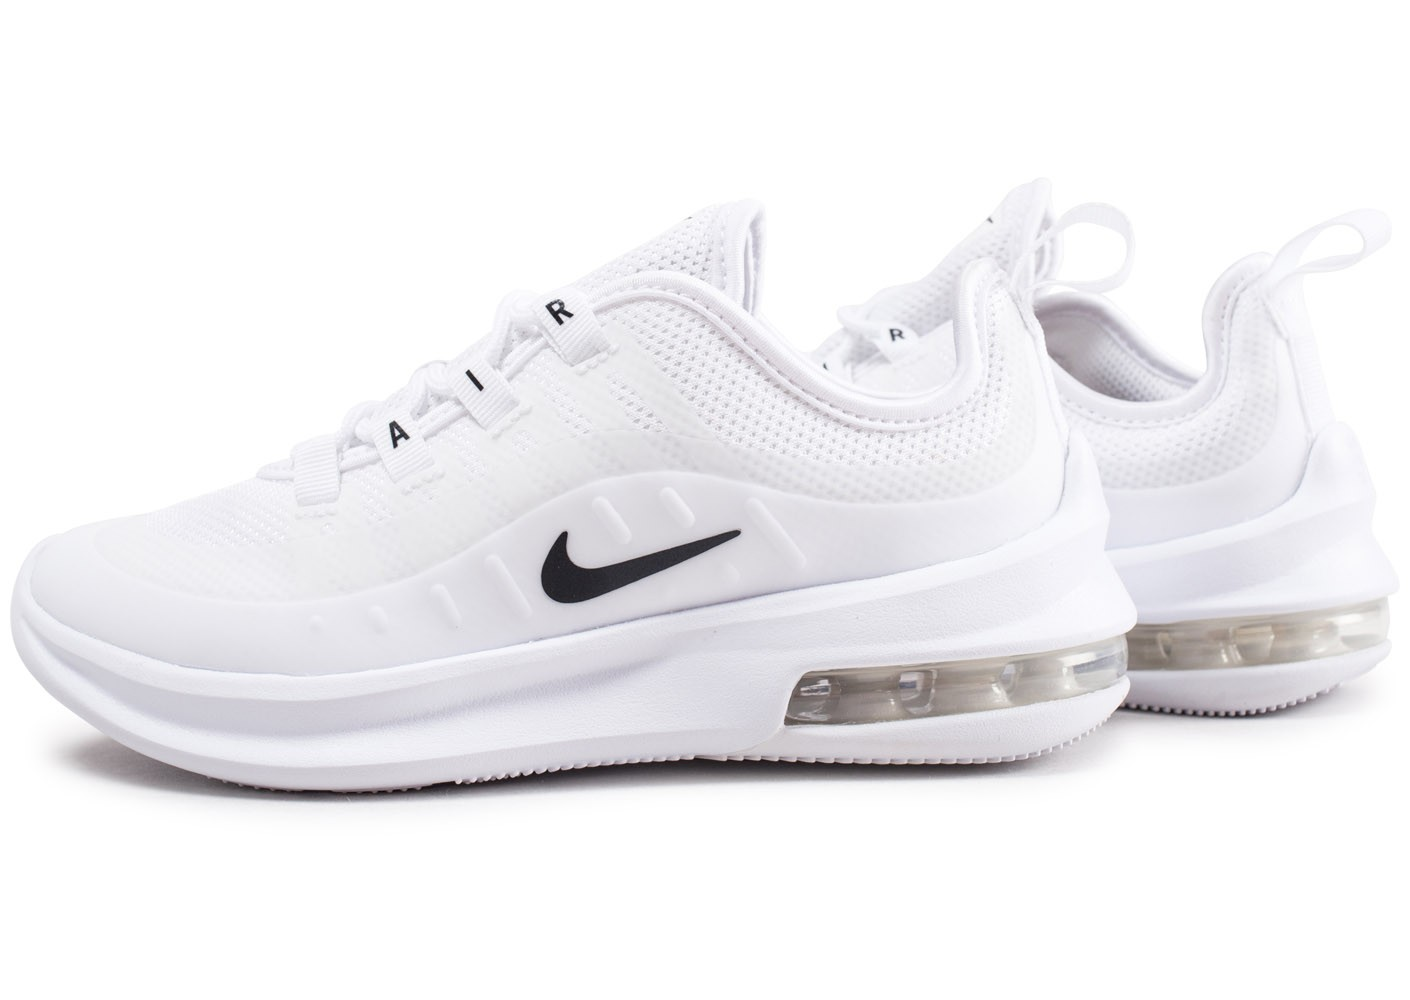 Nike Air Max Axis enfant blanche - Chaussures Prix stylés ...